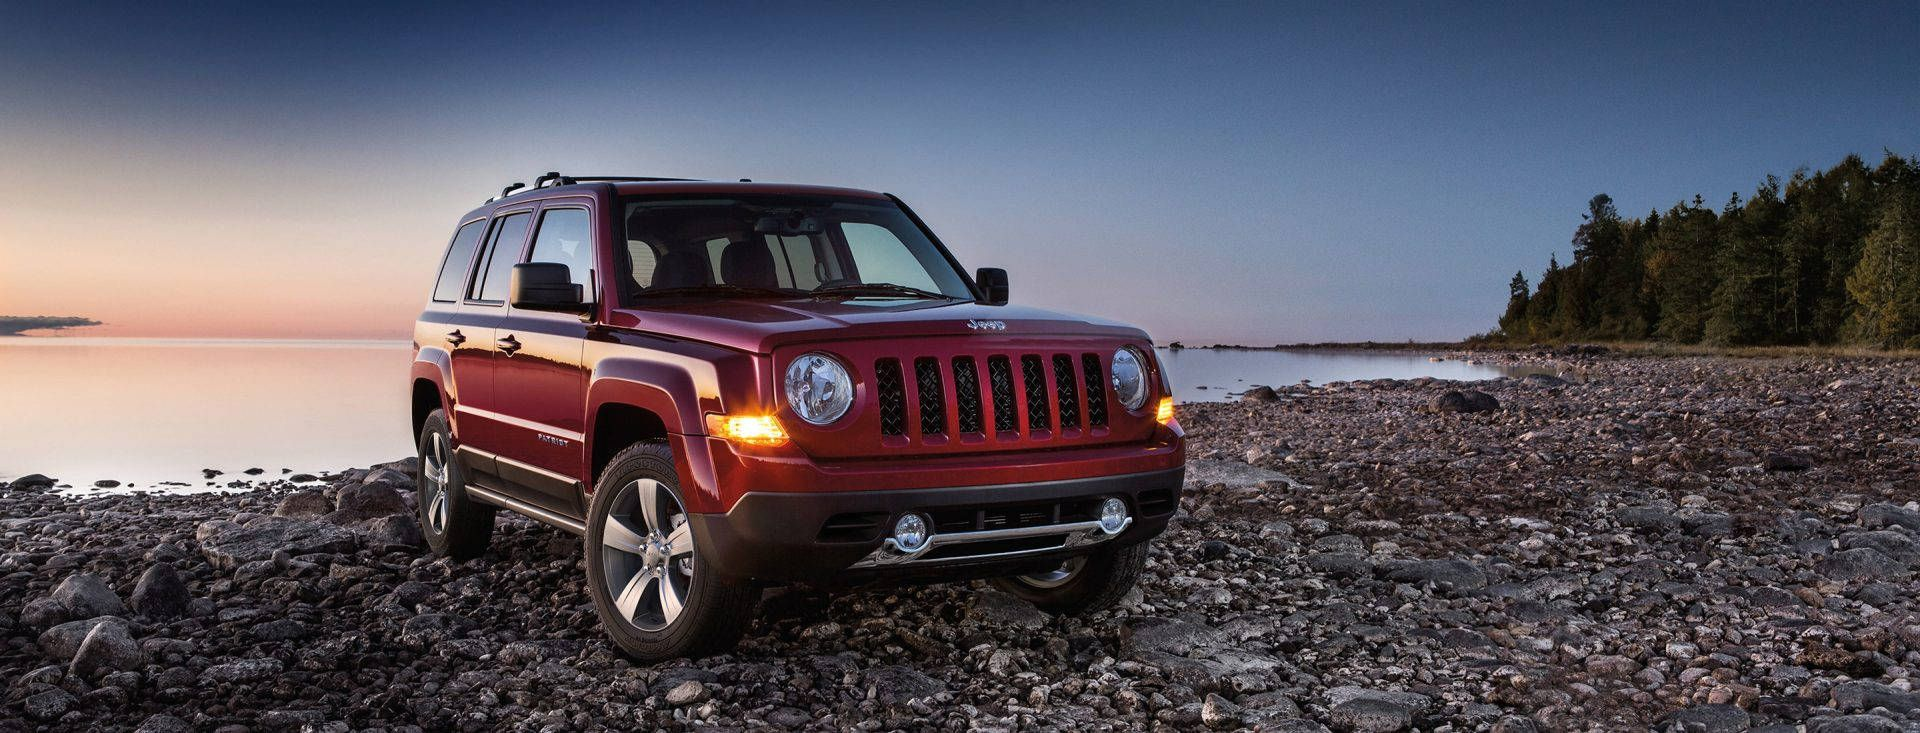 Jeep Patriot Tackles Off Road Excursions With Ease Jeep Patriot